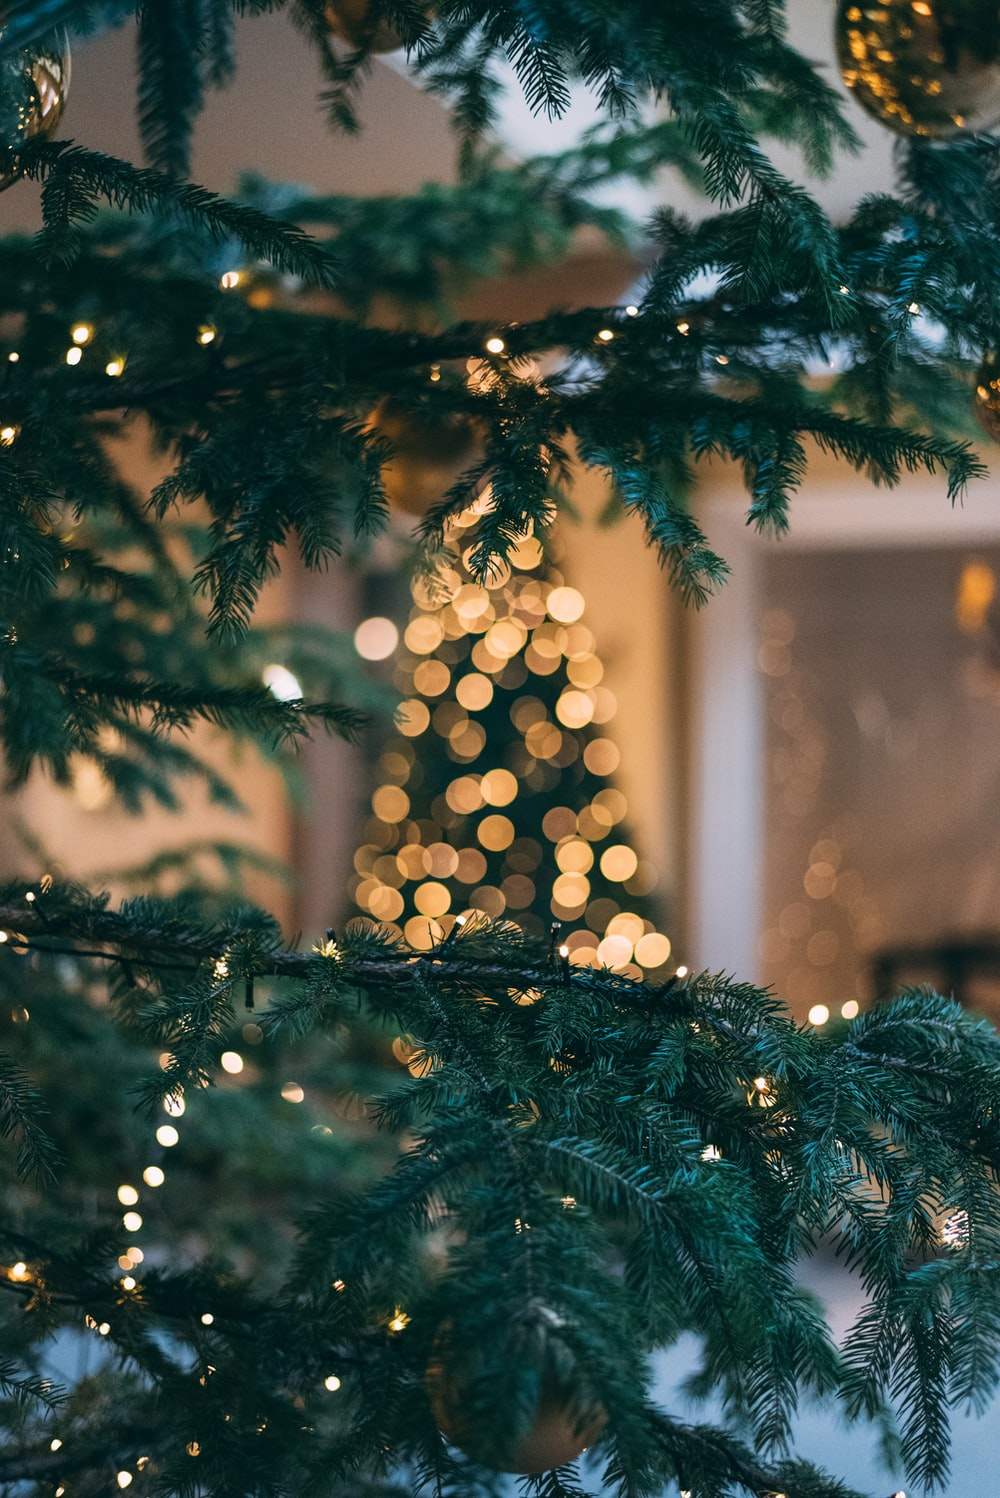 Christmas tree with string lights photo free christmas image on unsplash - Tree images free download ...